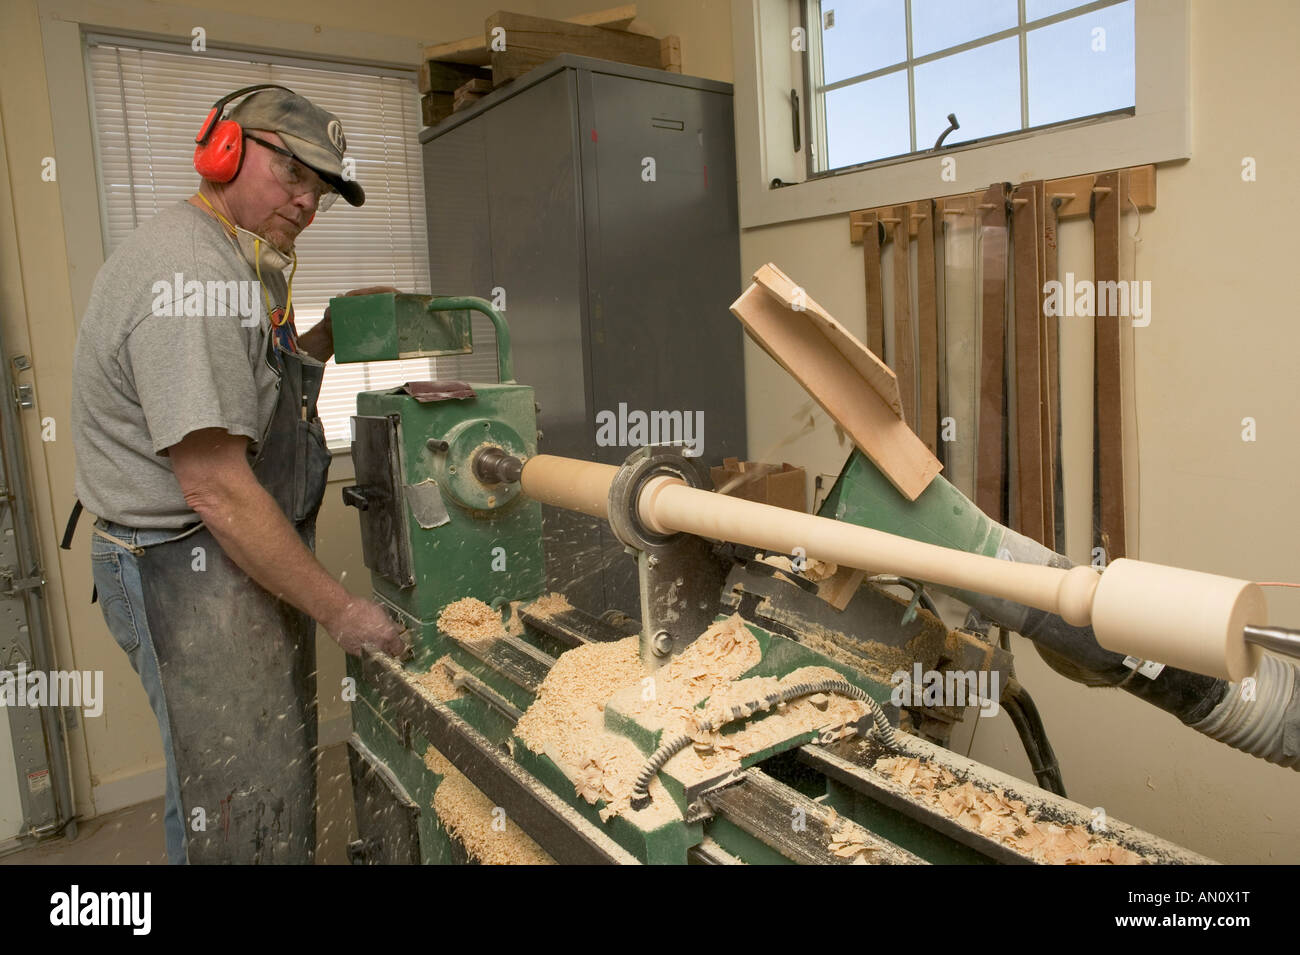 Worker turns a billet of ash wood on a lathe to make a baseball bat at Cooperstown Bat Company - Stock Image